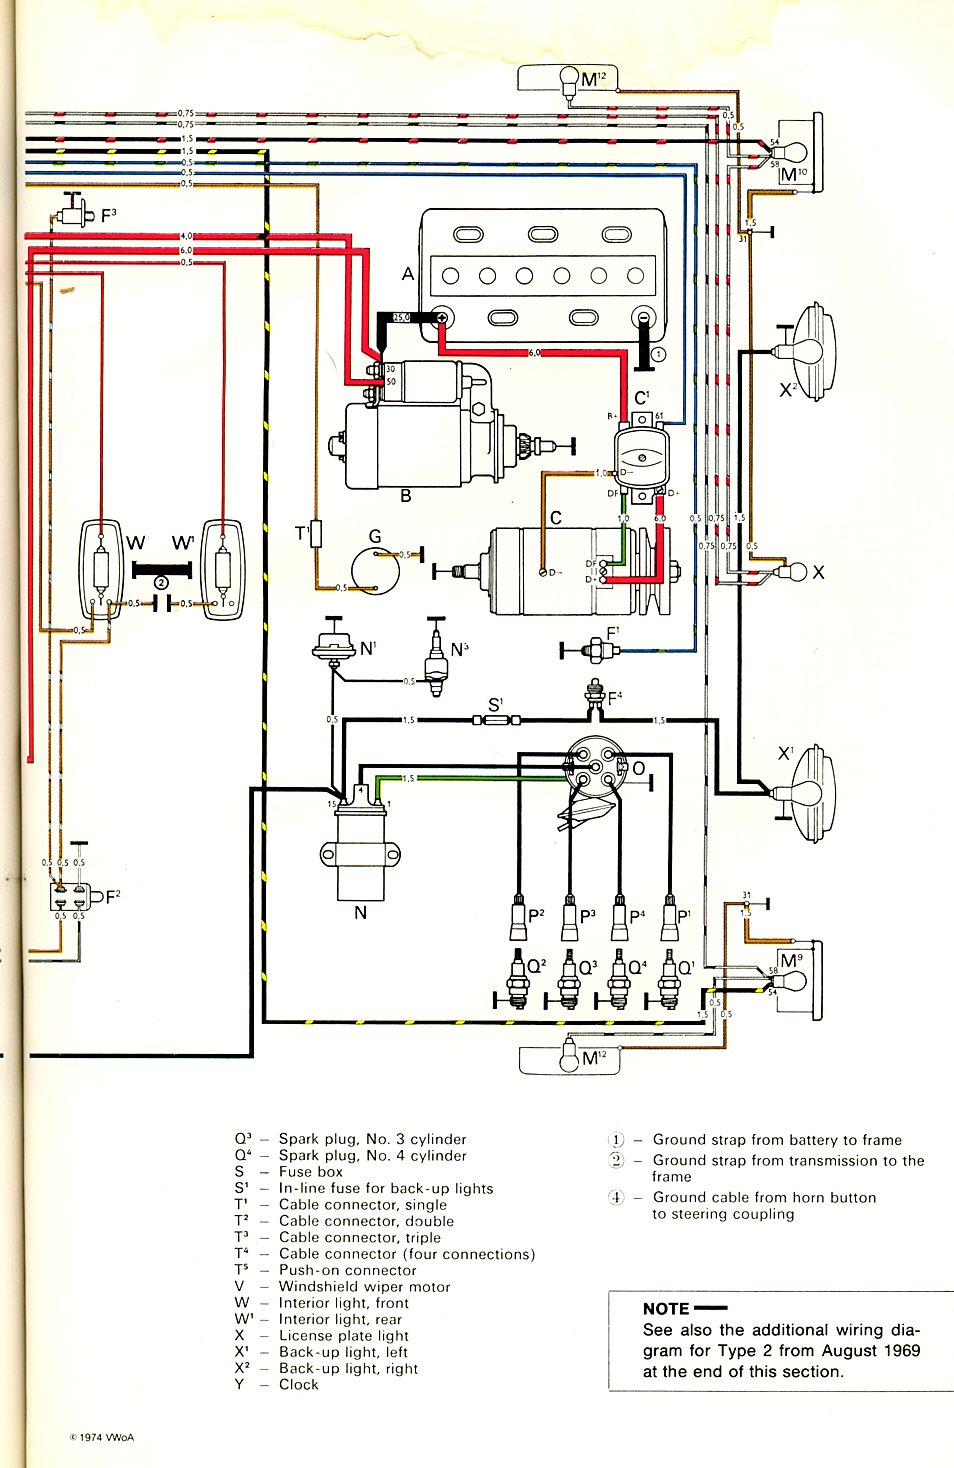 double neck wiring diagrams vw double relay wiring diagrams 1978 vw double relay wiring diagrams 1978 | wiring library